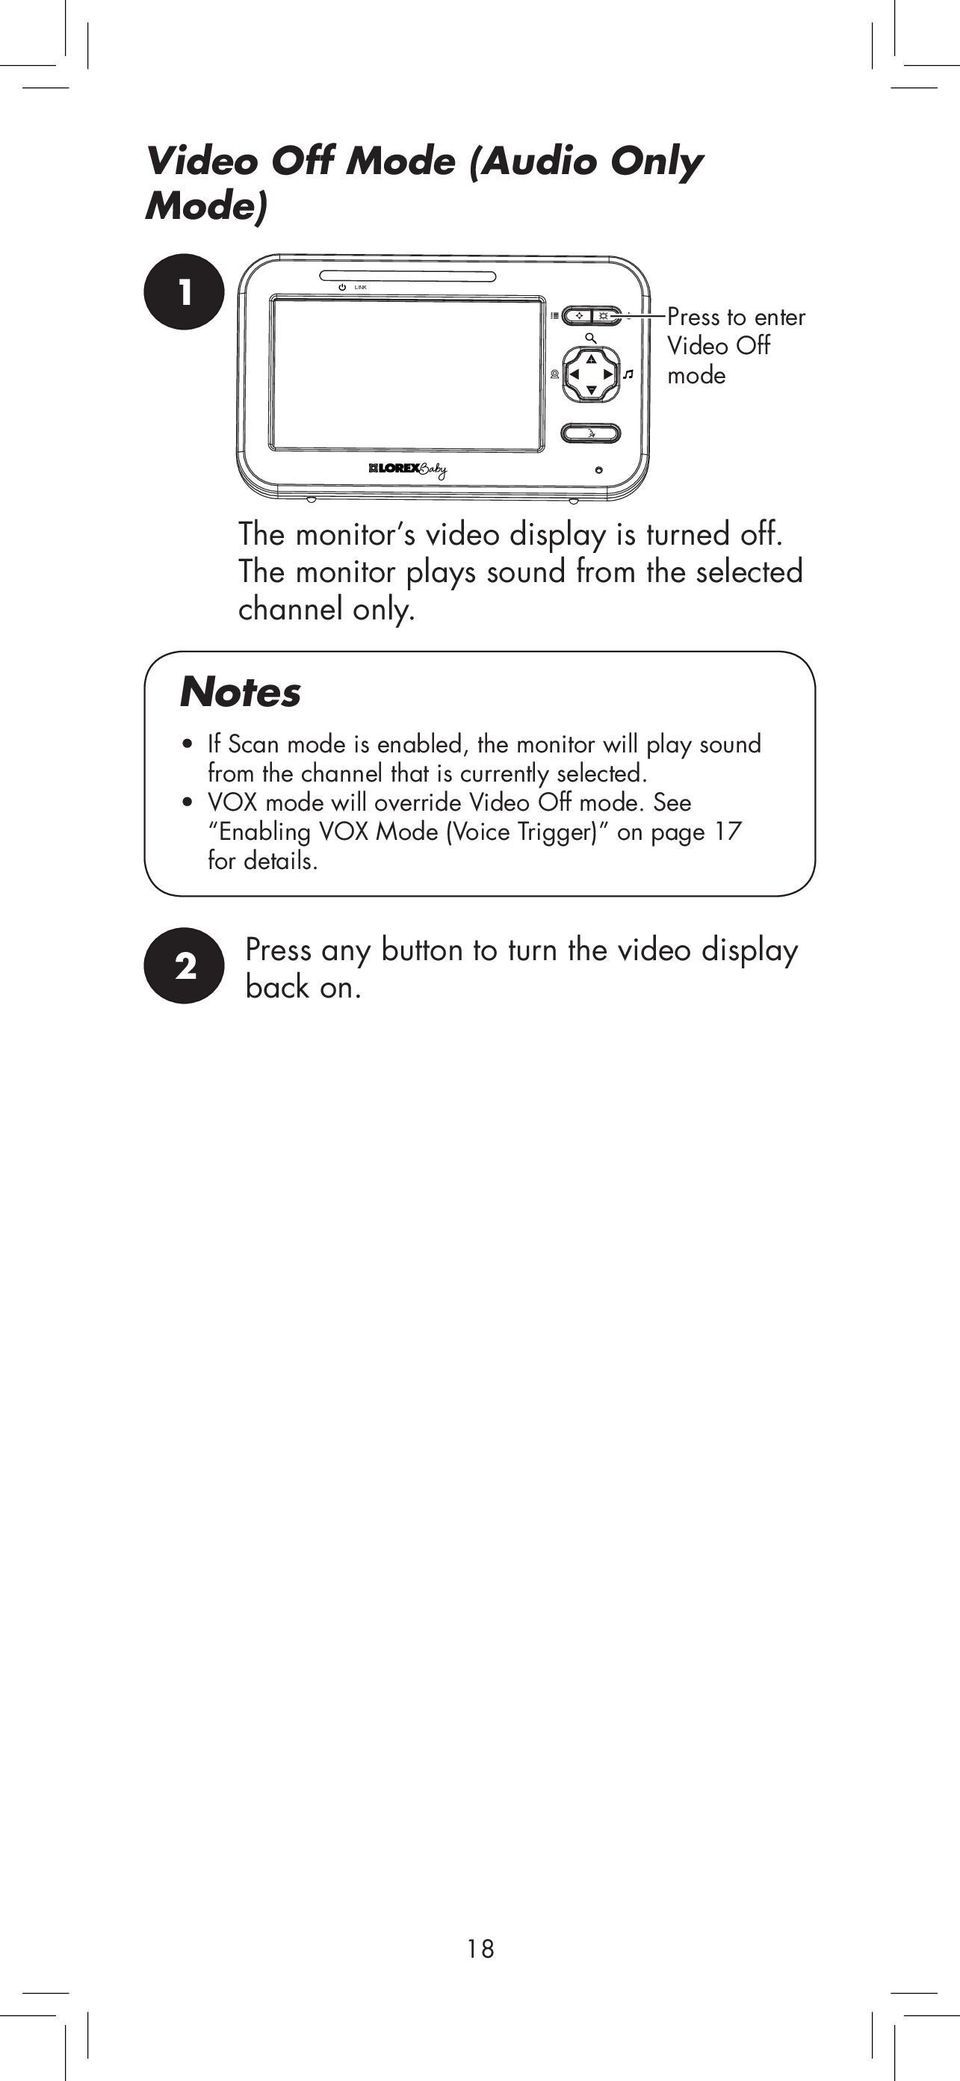 Notes If Scan mode is enabled, the monitor will play sound from the channel that is currently selected.